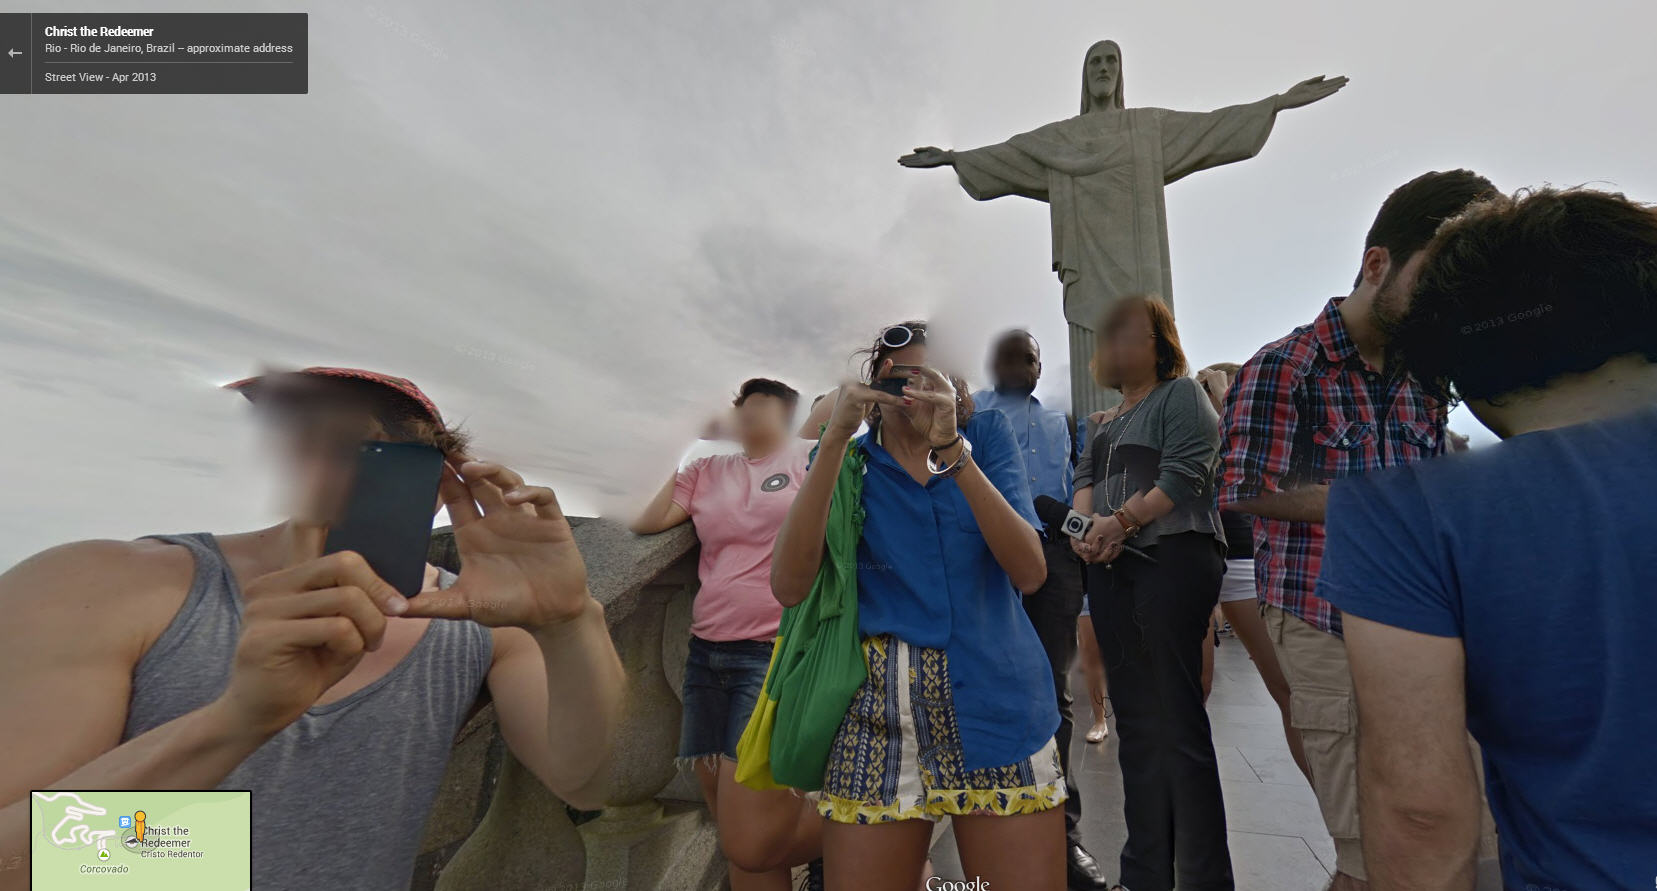 Who's getting more pictures, Jesus, or Google Street View?